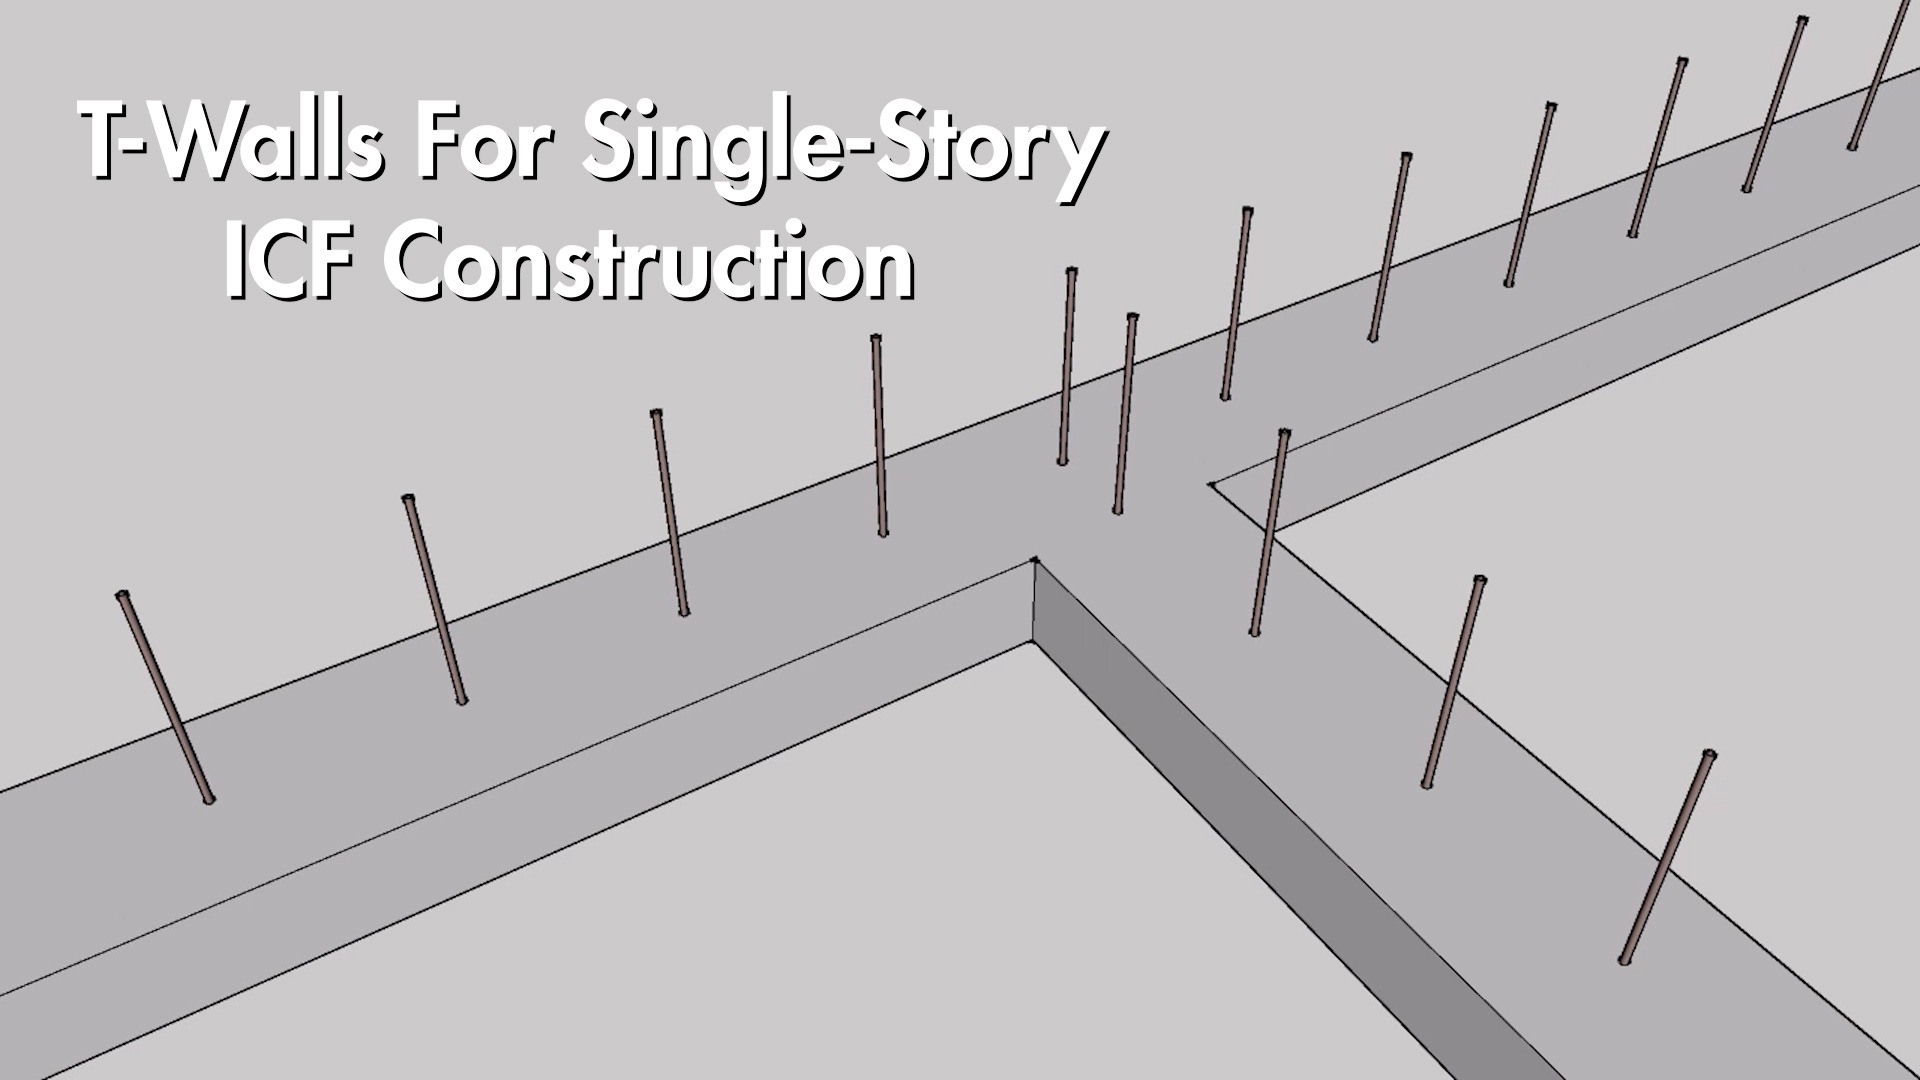 Video: How To Build T-Walls For Single-Story Construction